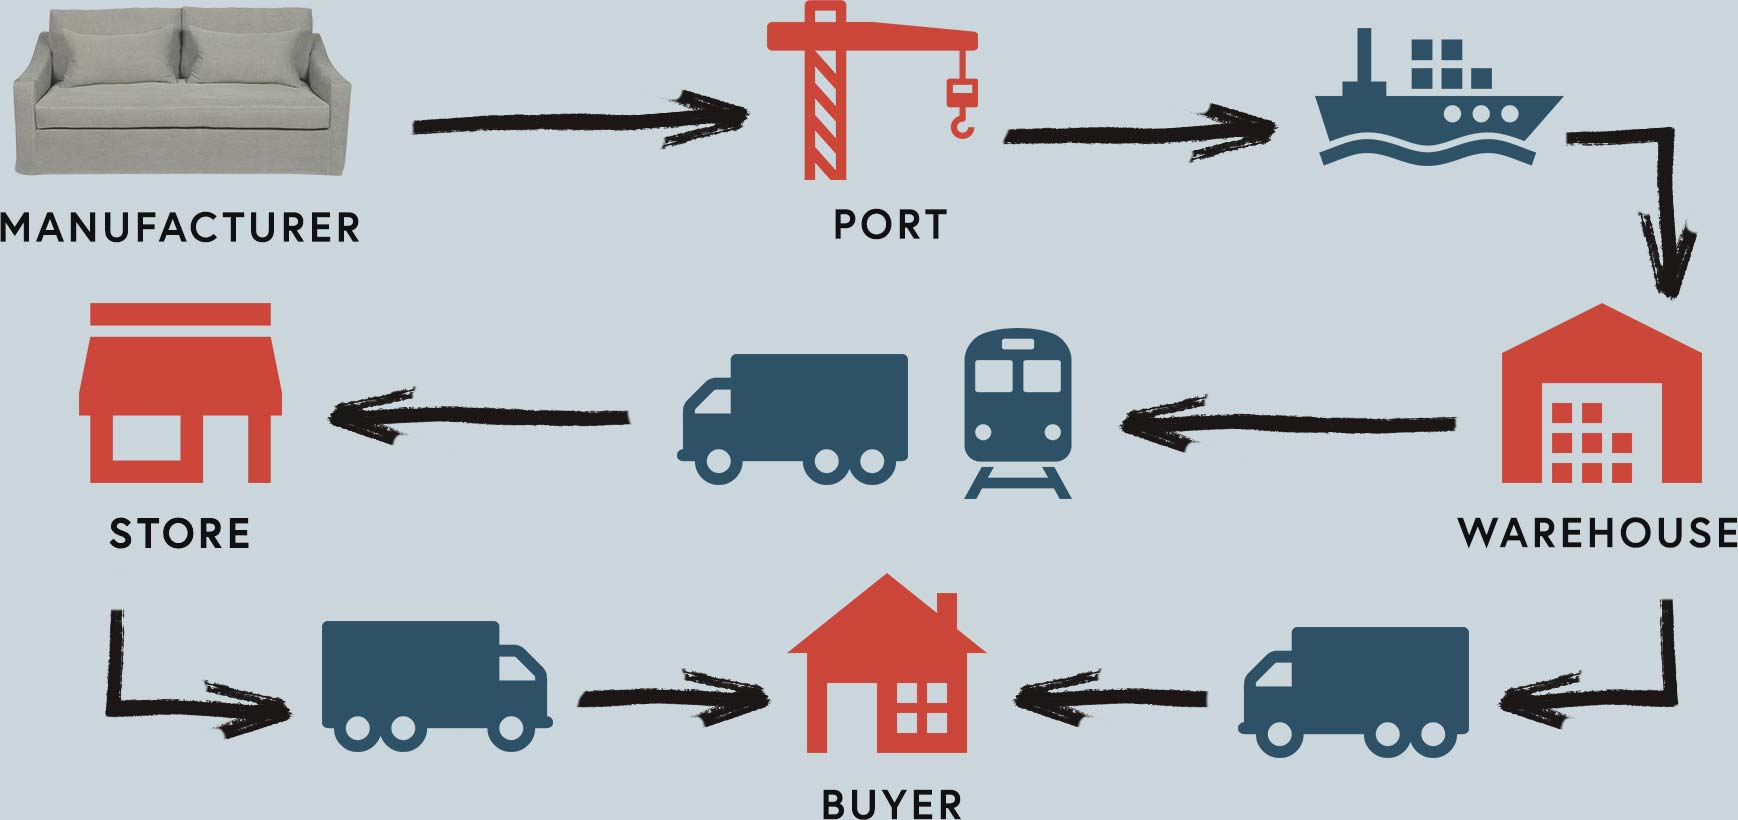 Visual representation of a distribution flow from manufacturer to buyer using icons and arrows